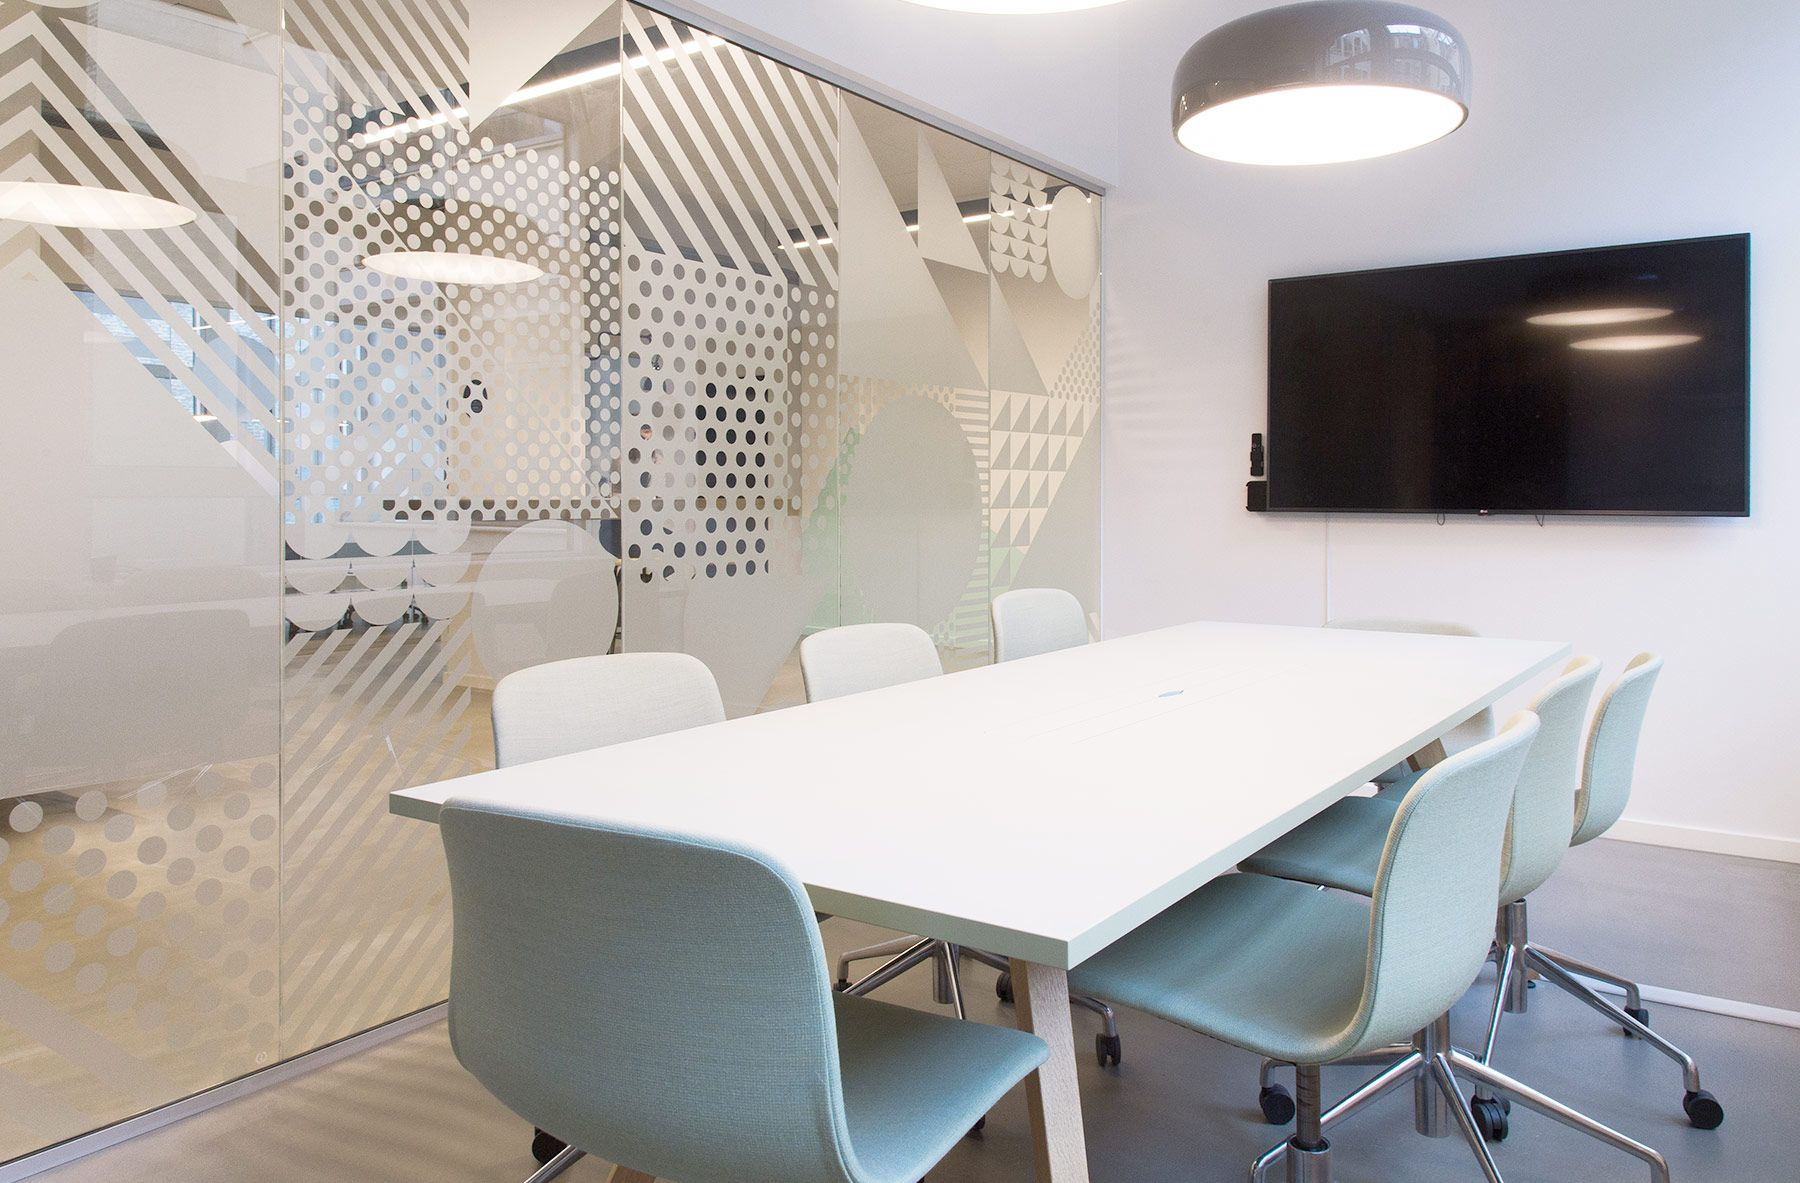 Meeting Room Design Geometric Pattern In Frosted Glass